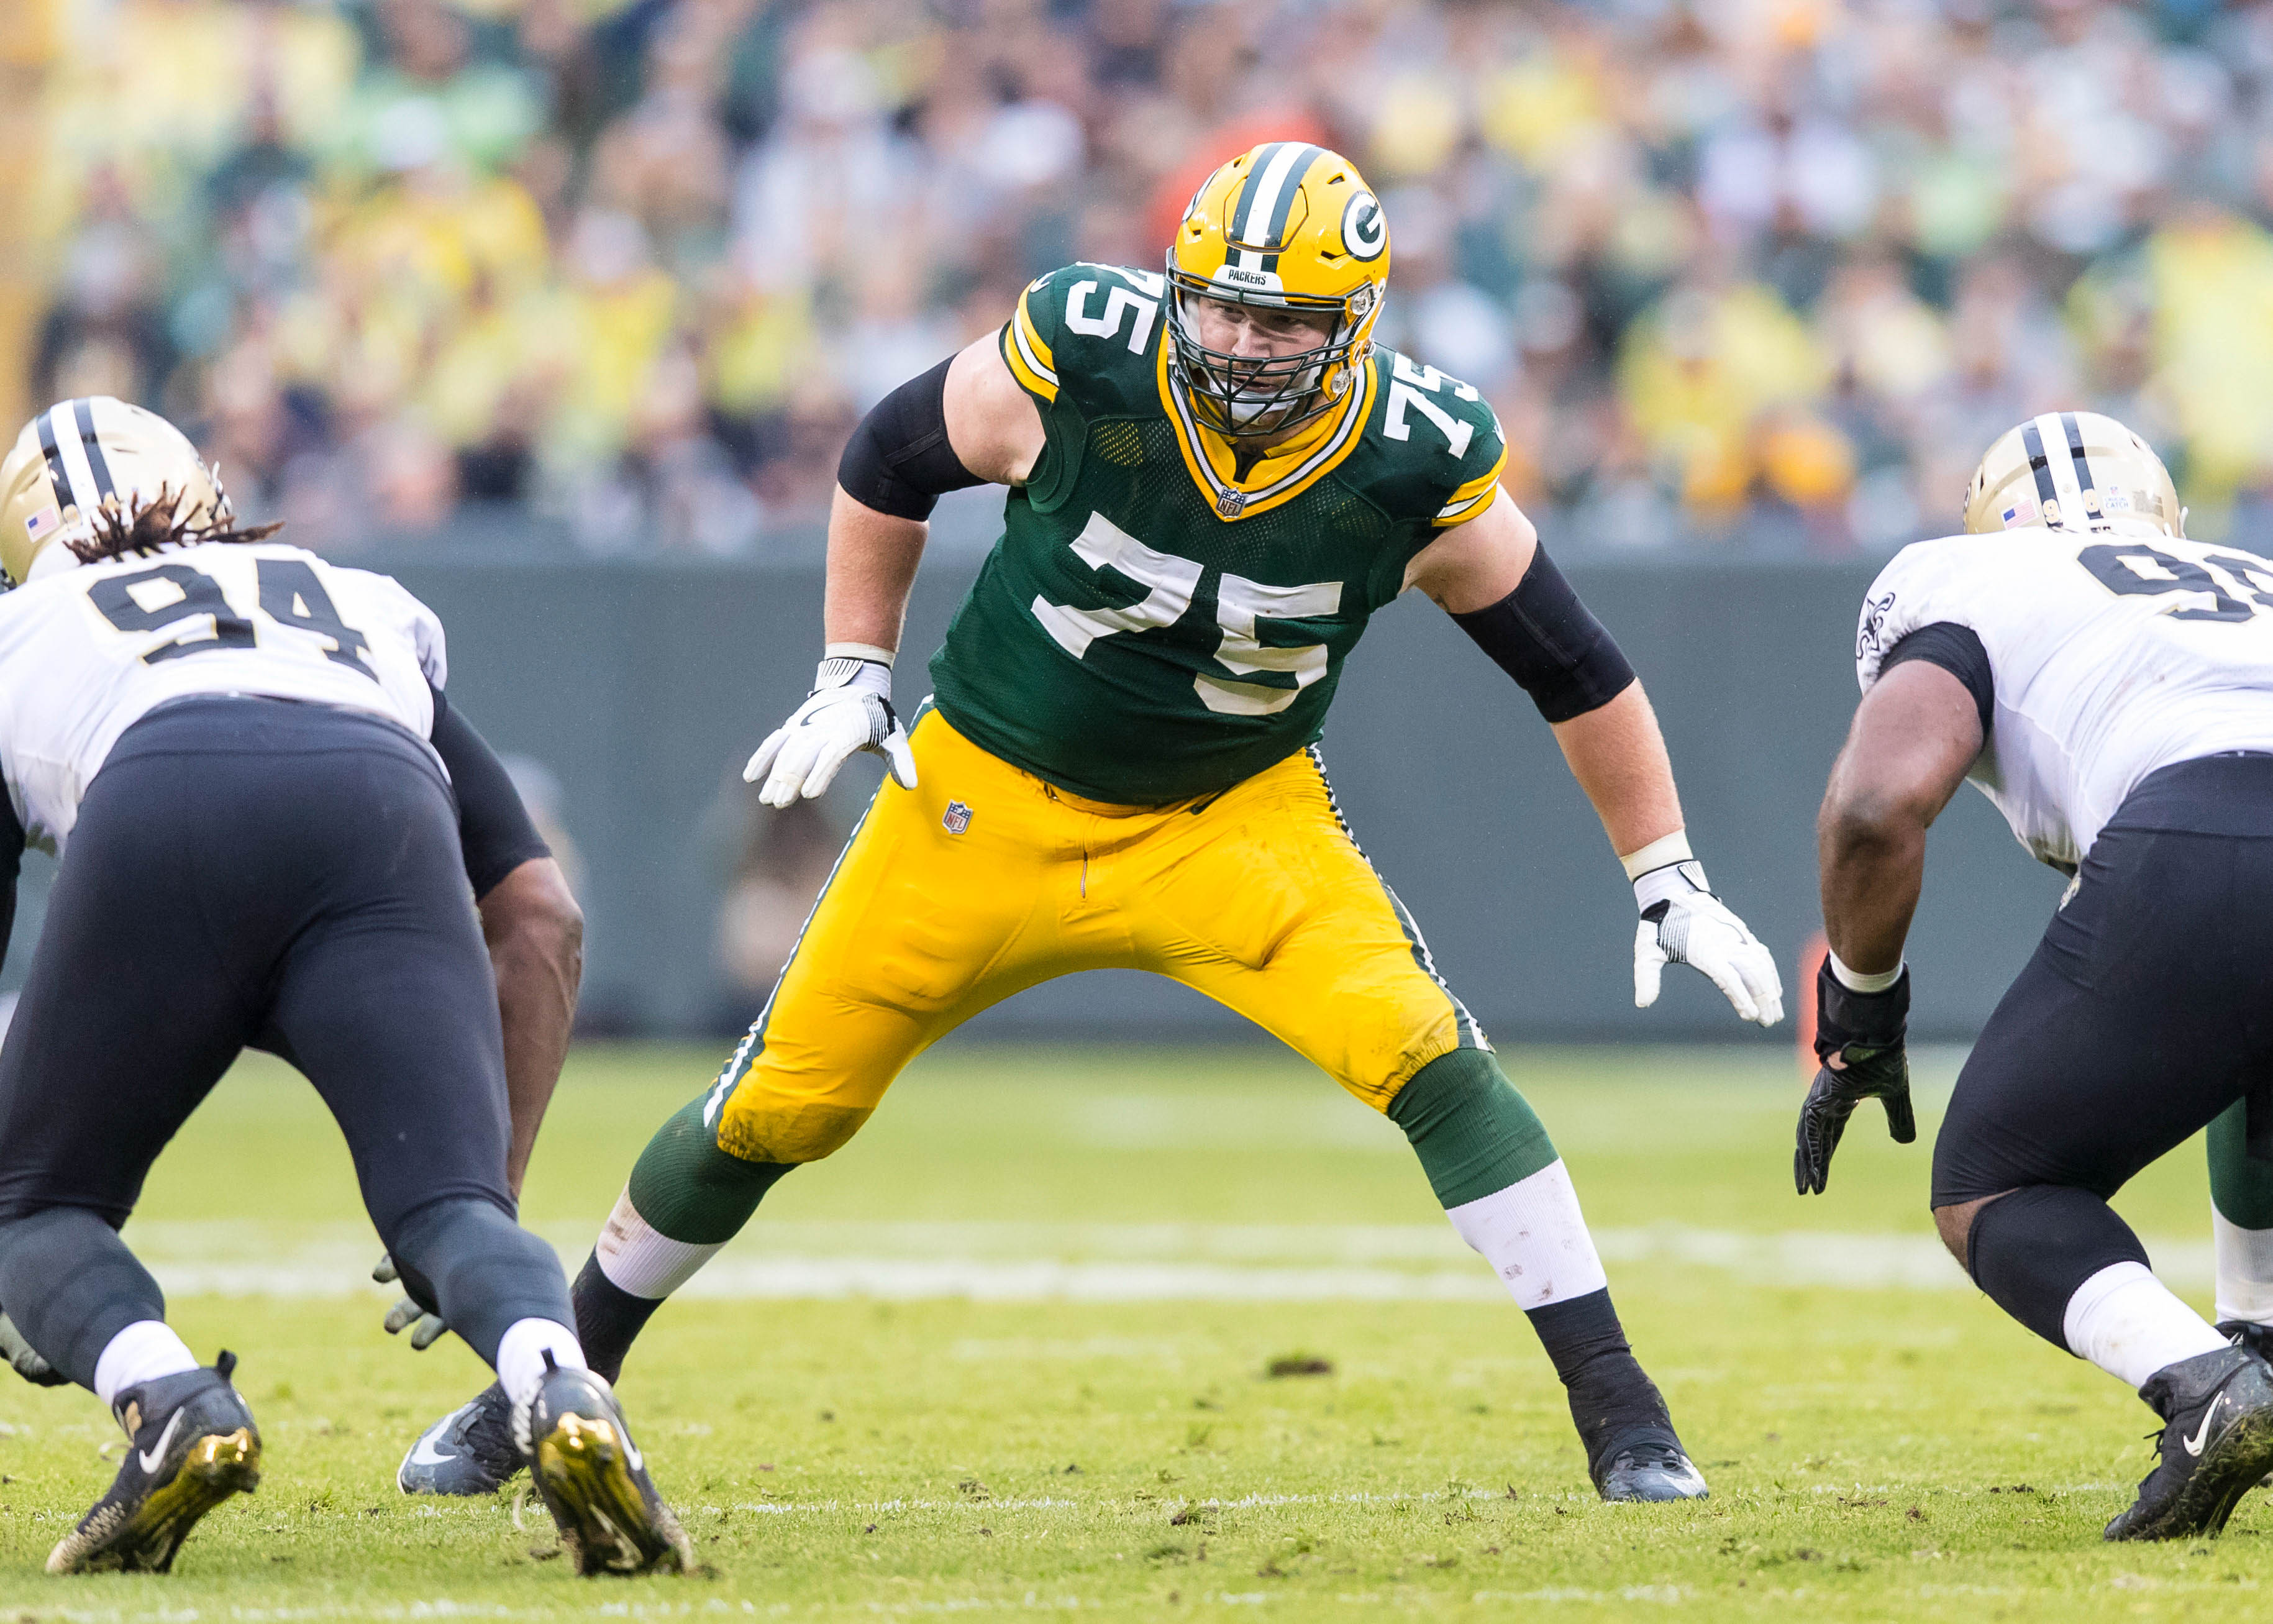 Bryan Bulaga Is Shining at RT for the Packers